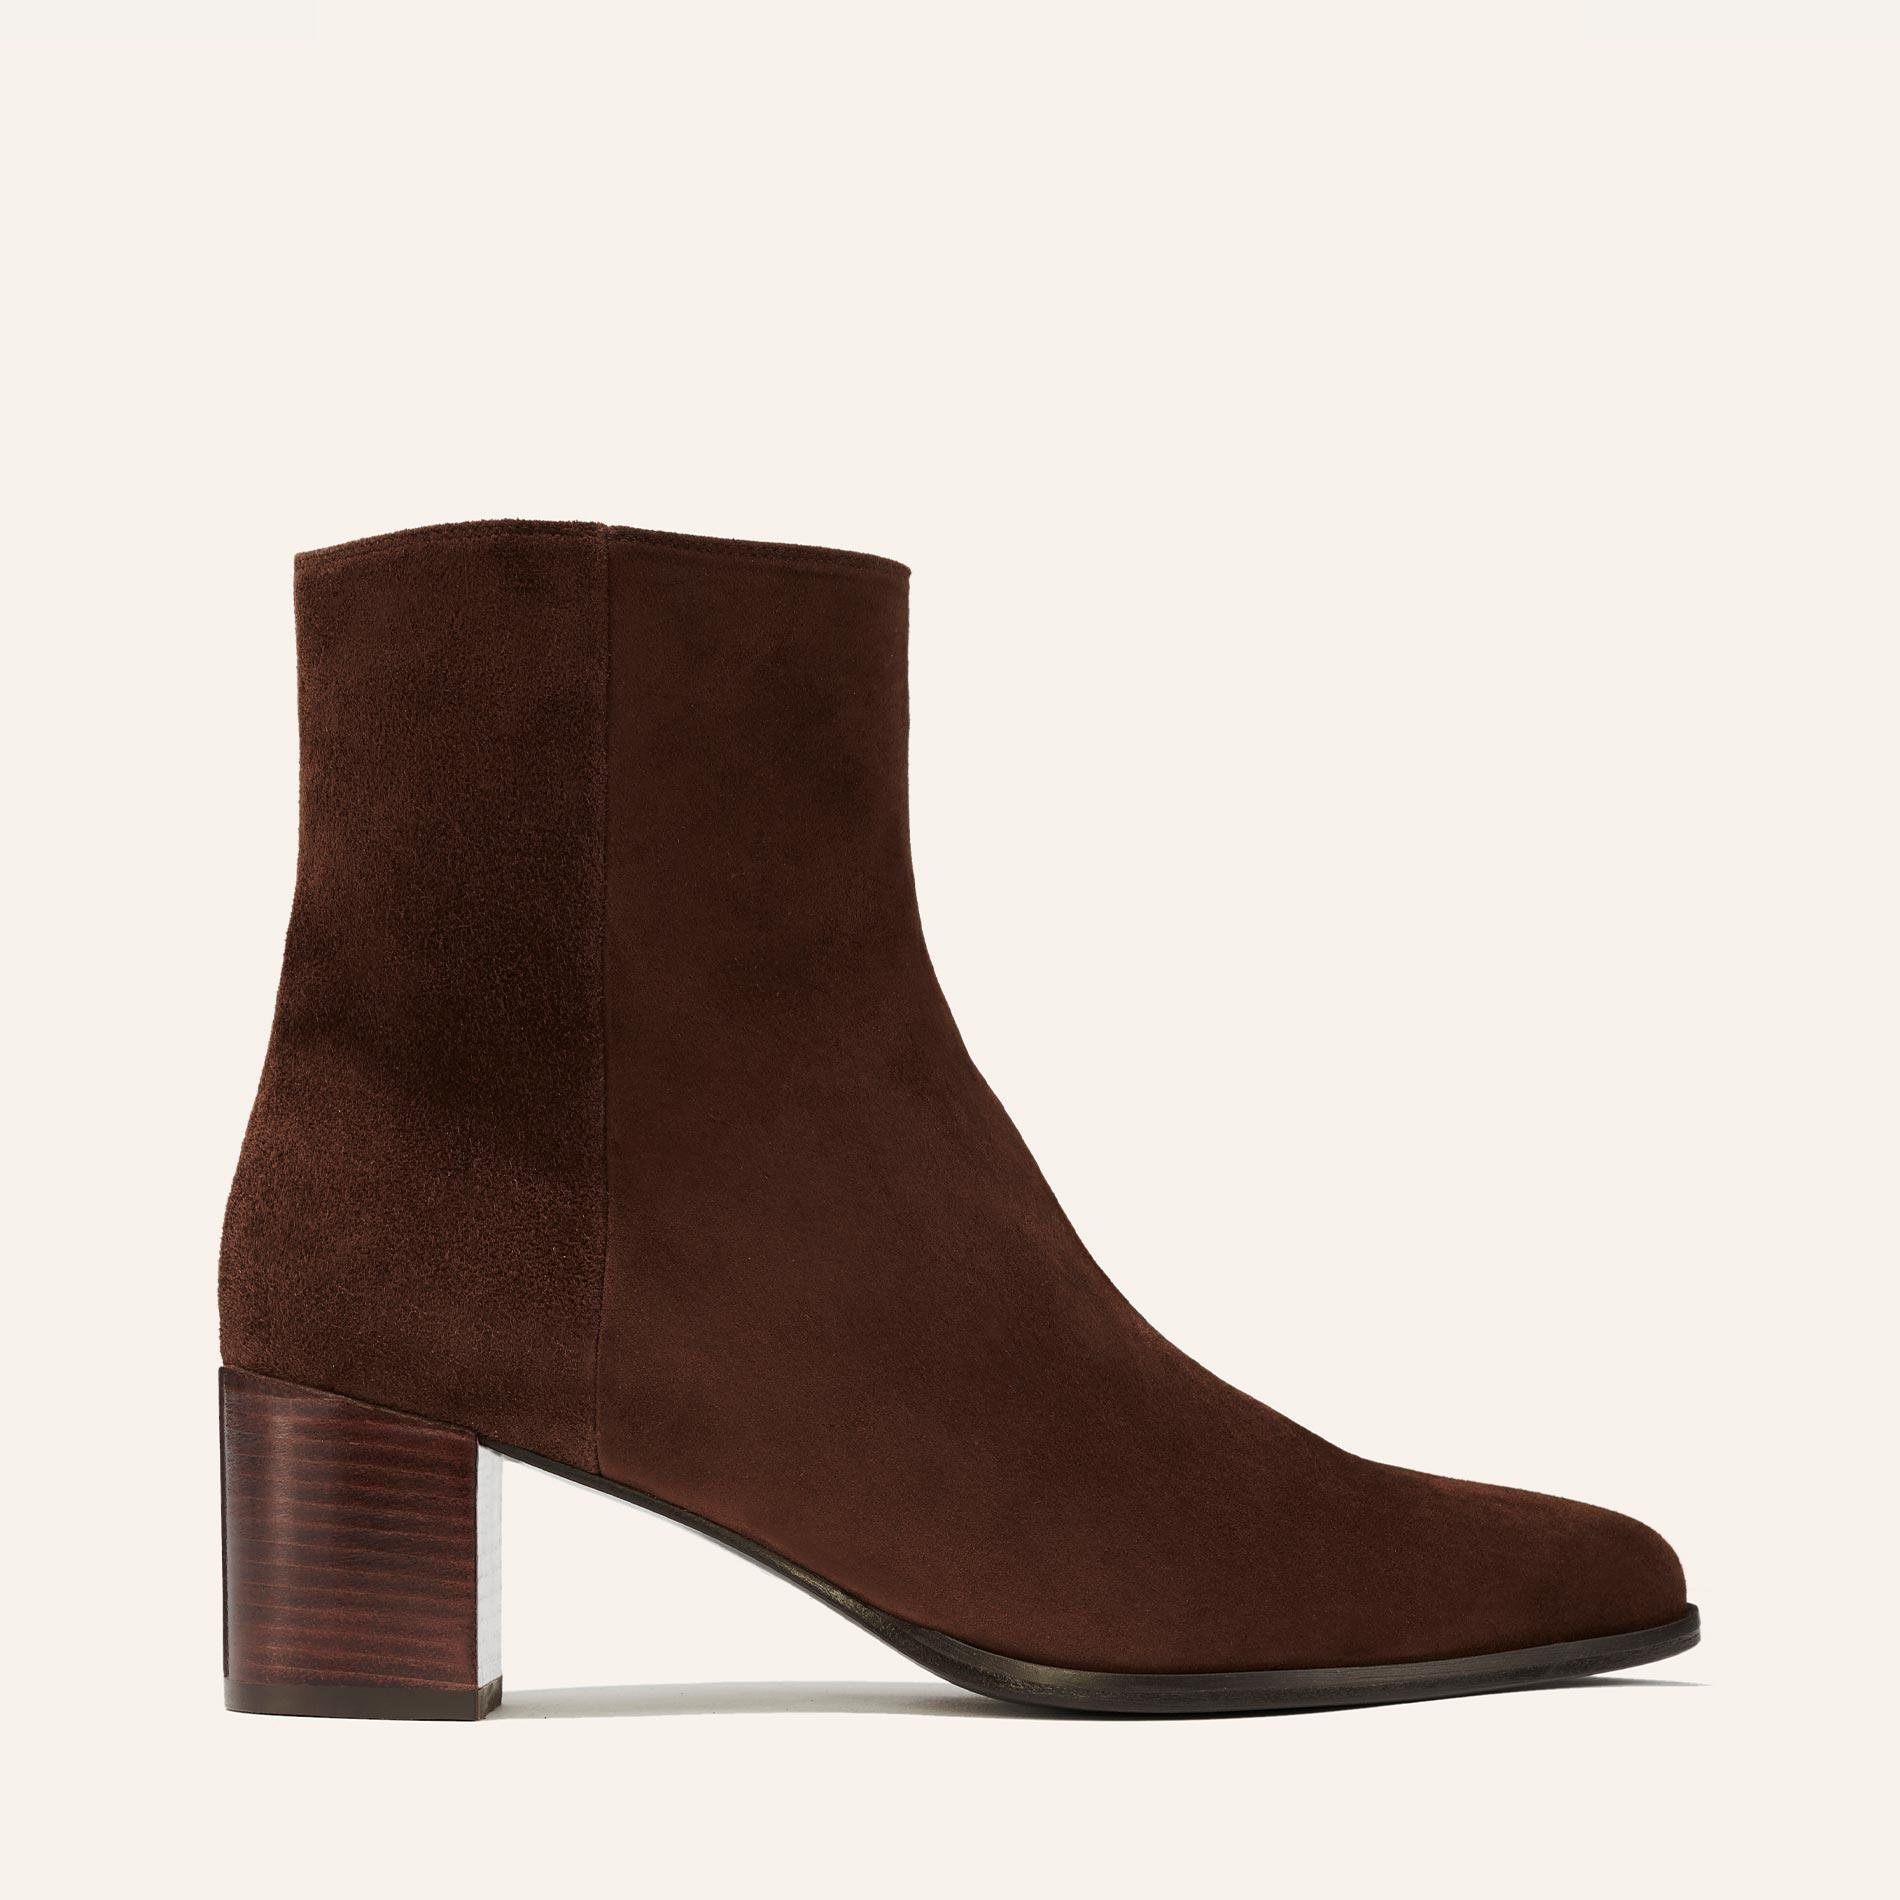 The Downtown Boot - Chocolate Suede